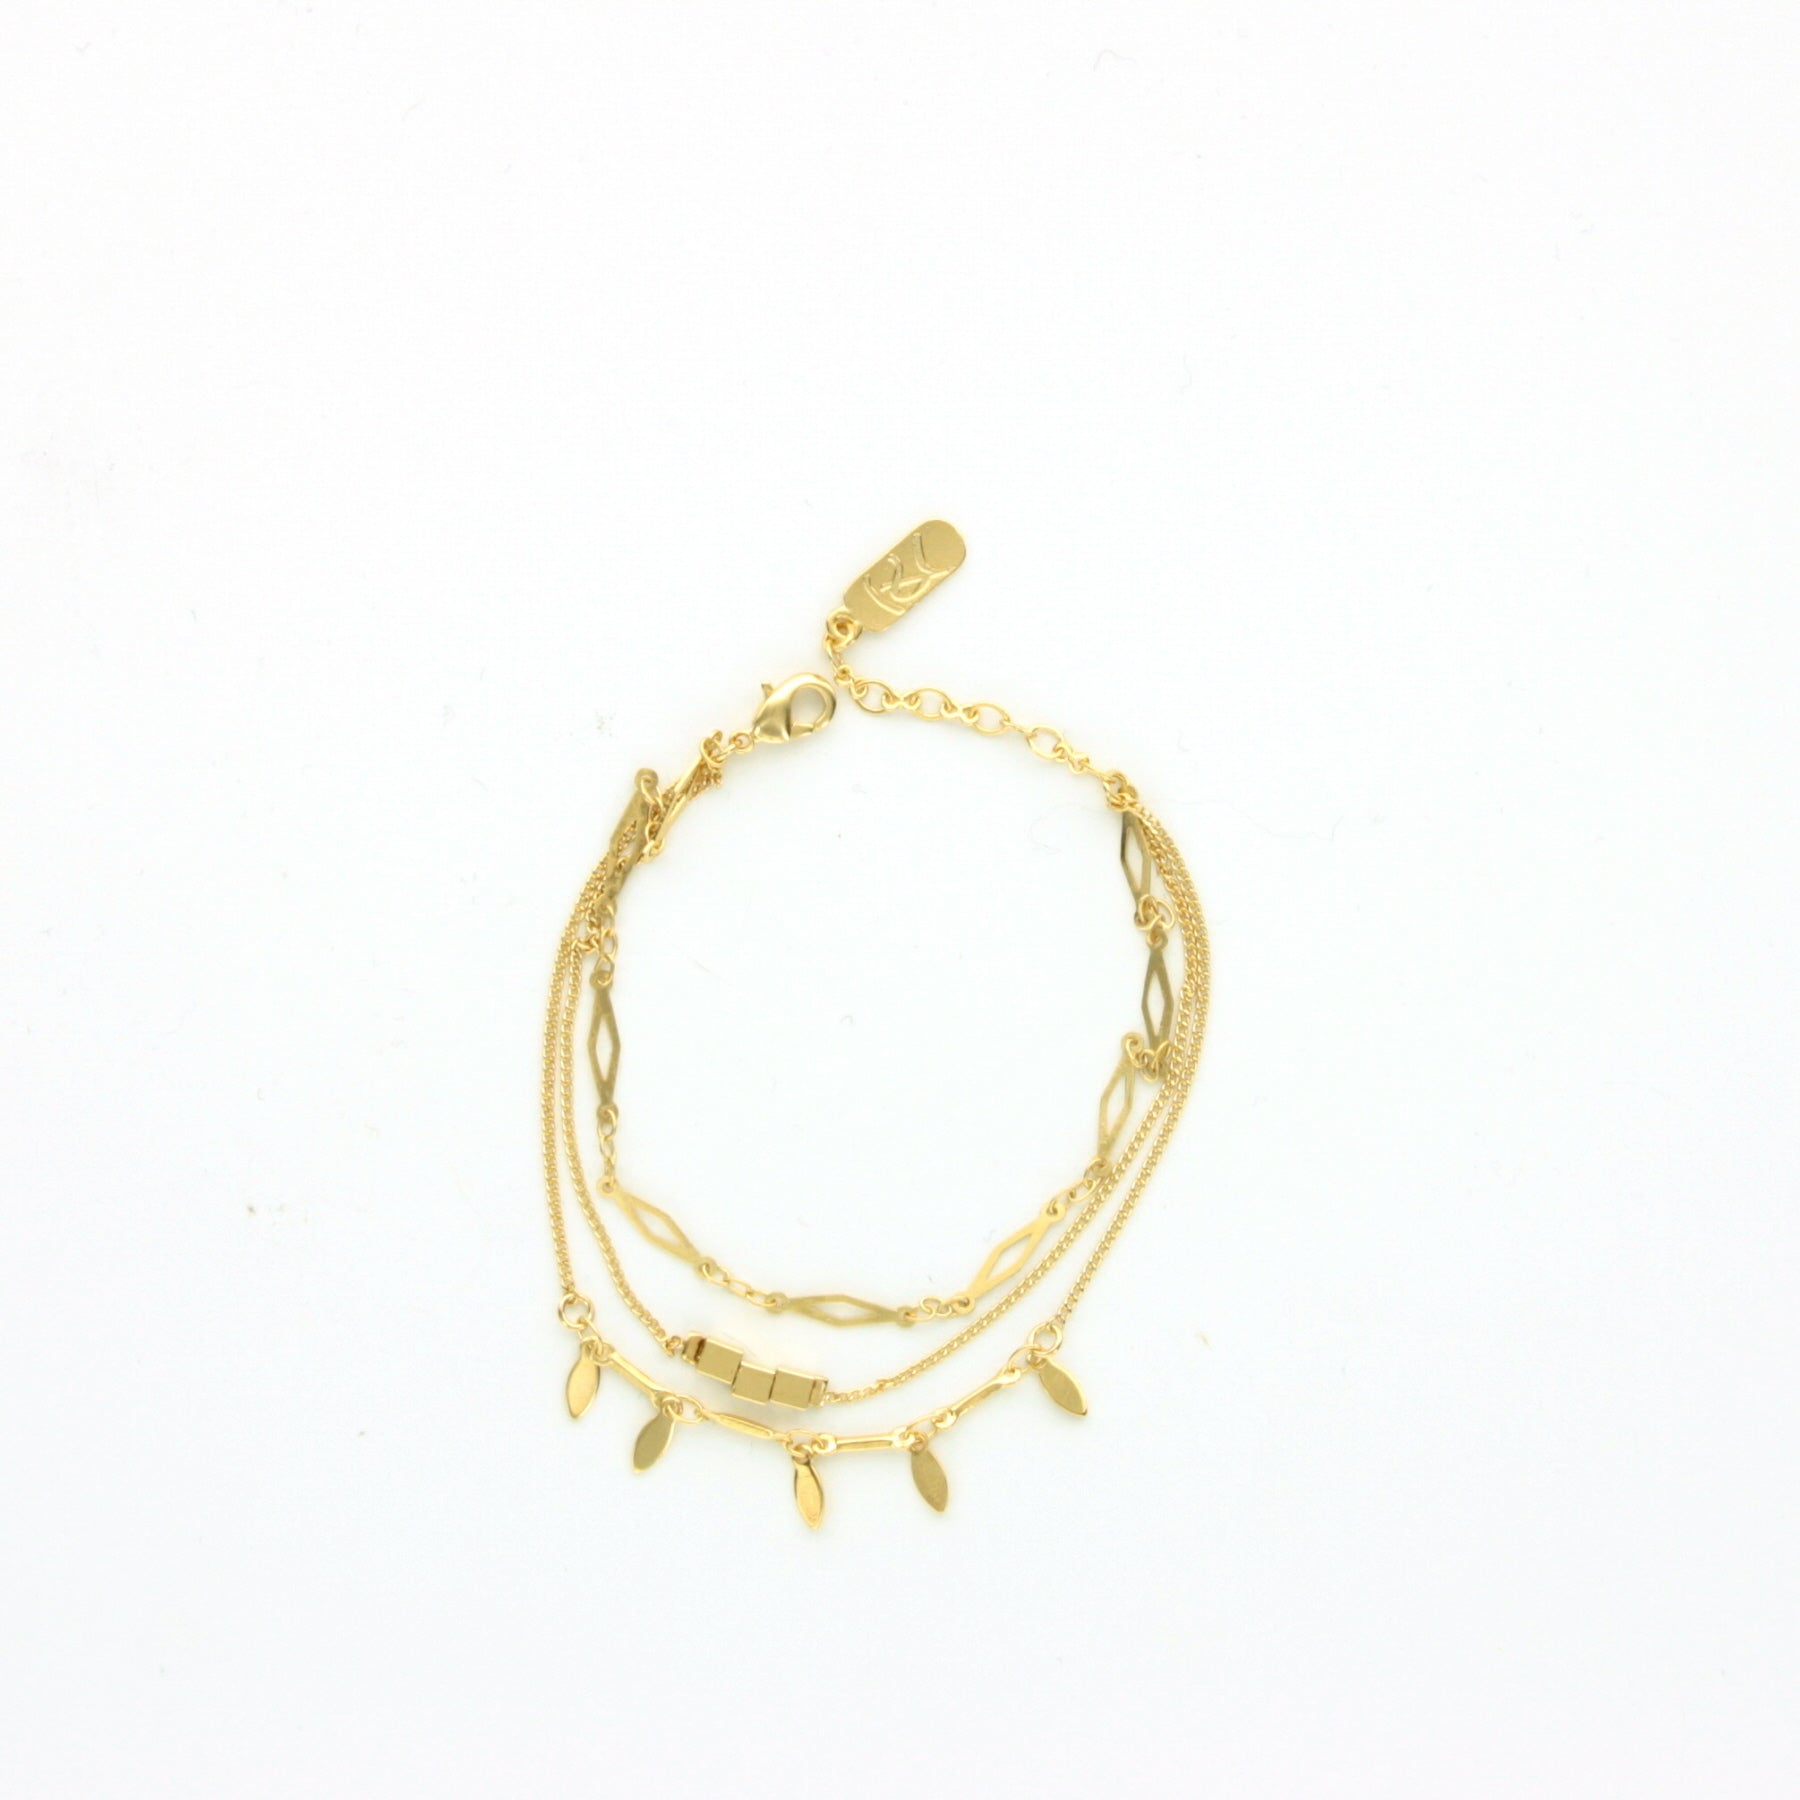 BRACELET TRIO GOLD - Wonderfuletta